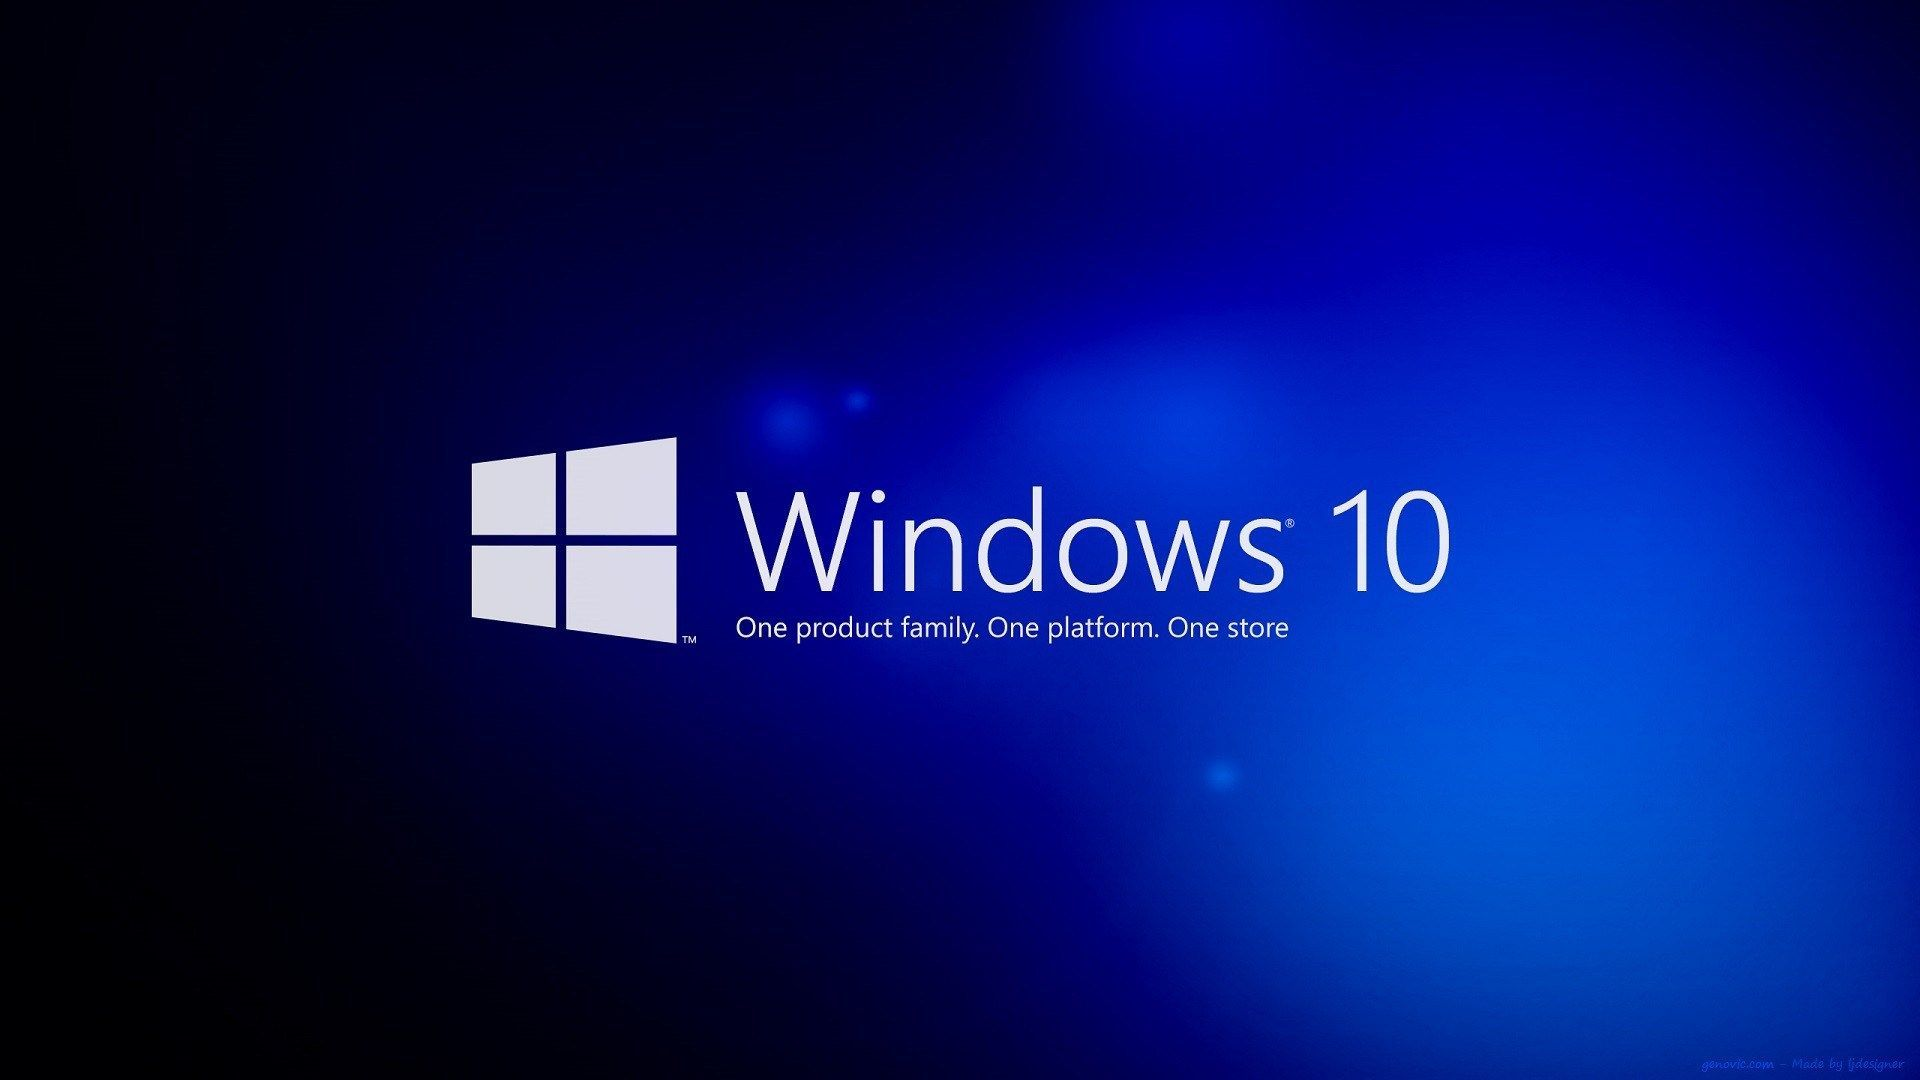 Wallpaper Hd Windows 10 Logo In 2020 Wallpaper Windows 10 Windows 10 Background Hd Wallpapers For Laptop